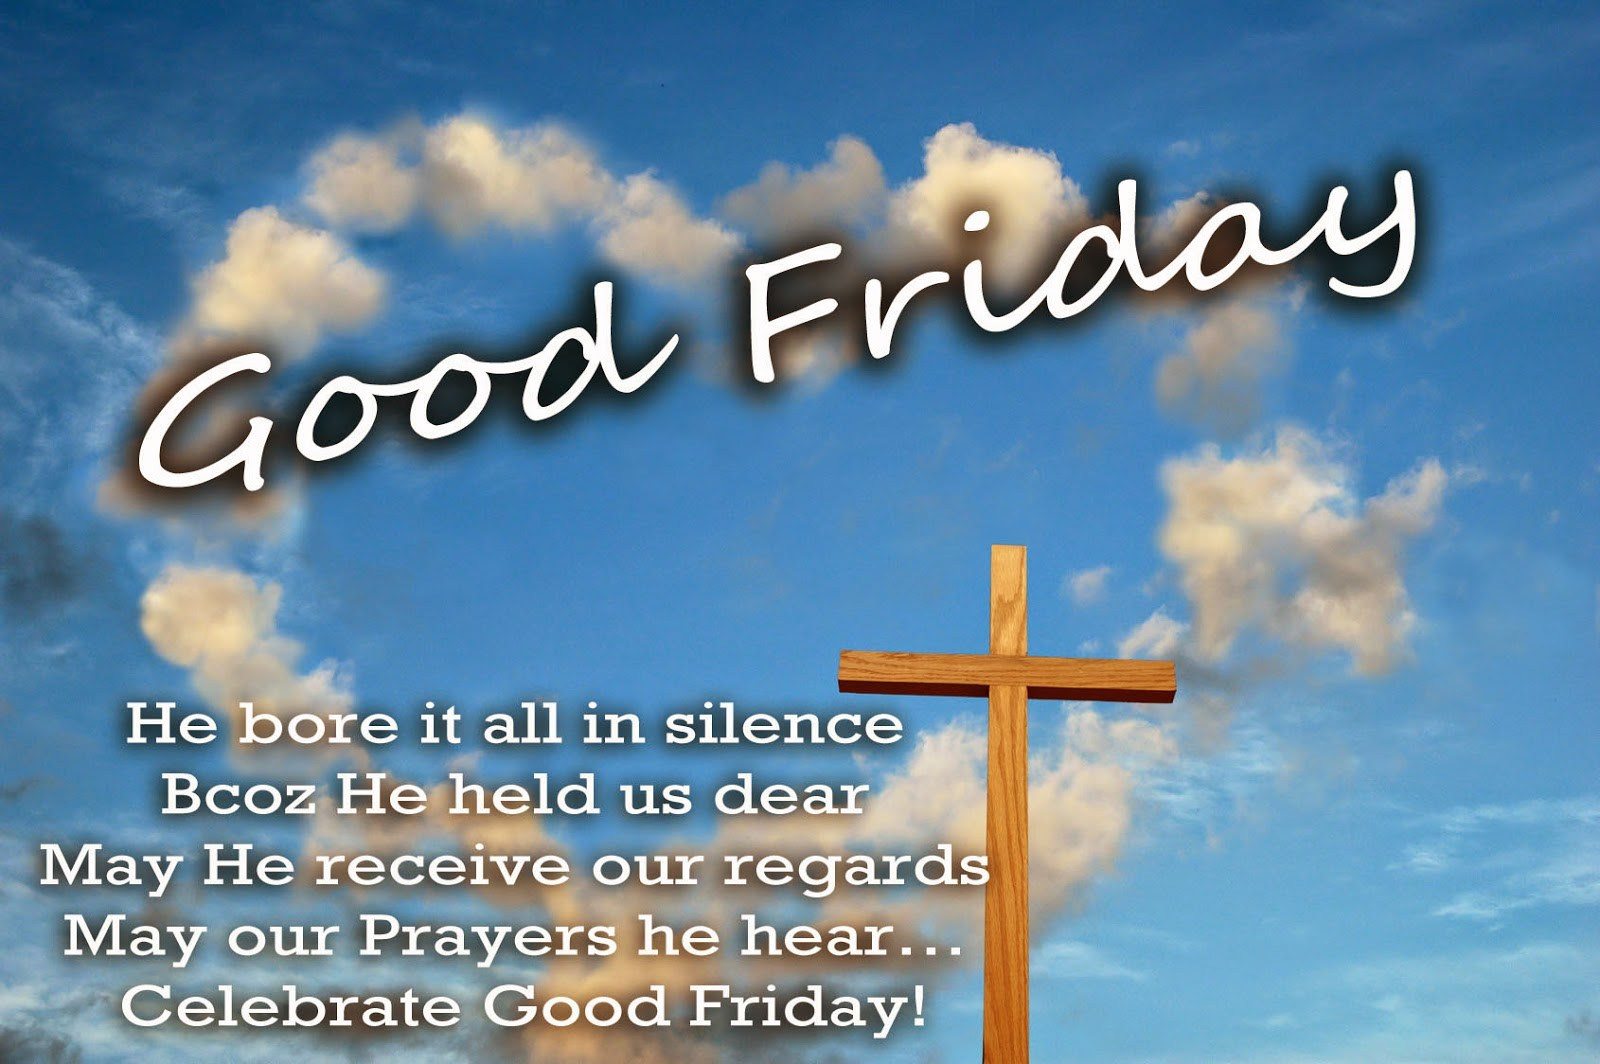 Good Friday Images 2020 (2)